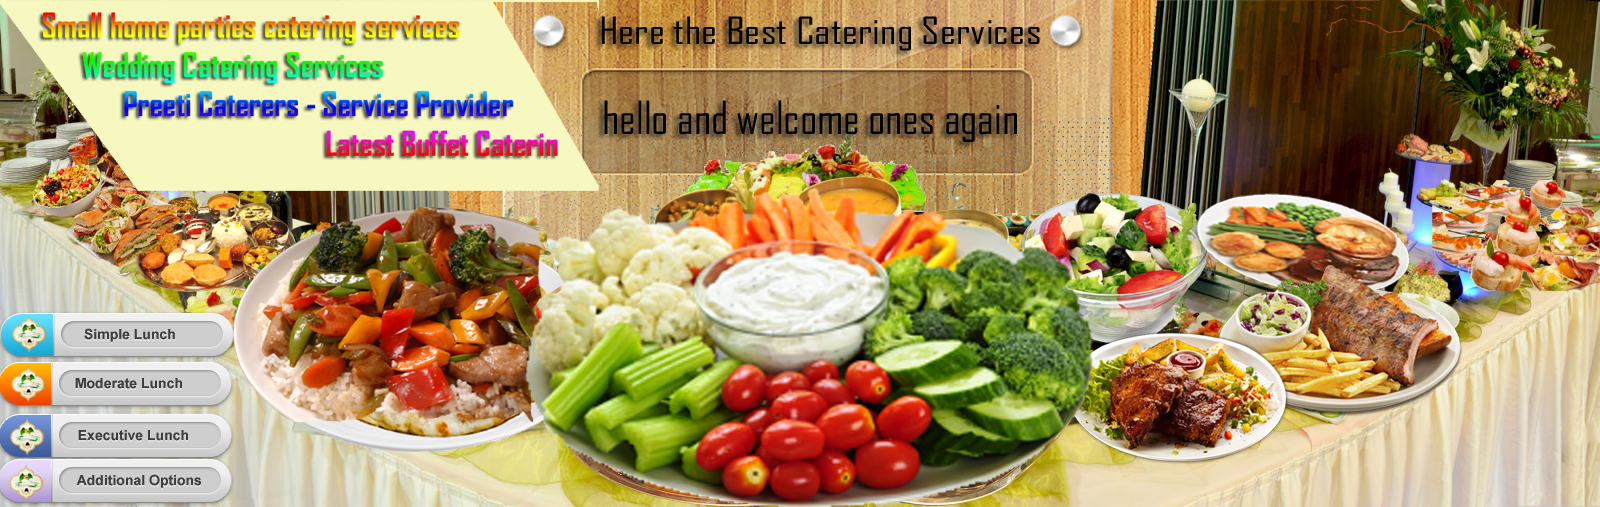 Best Catering Services in Cooking Expert Namakkal, Caterers India-